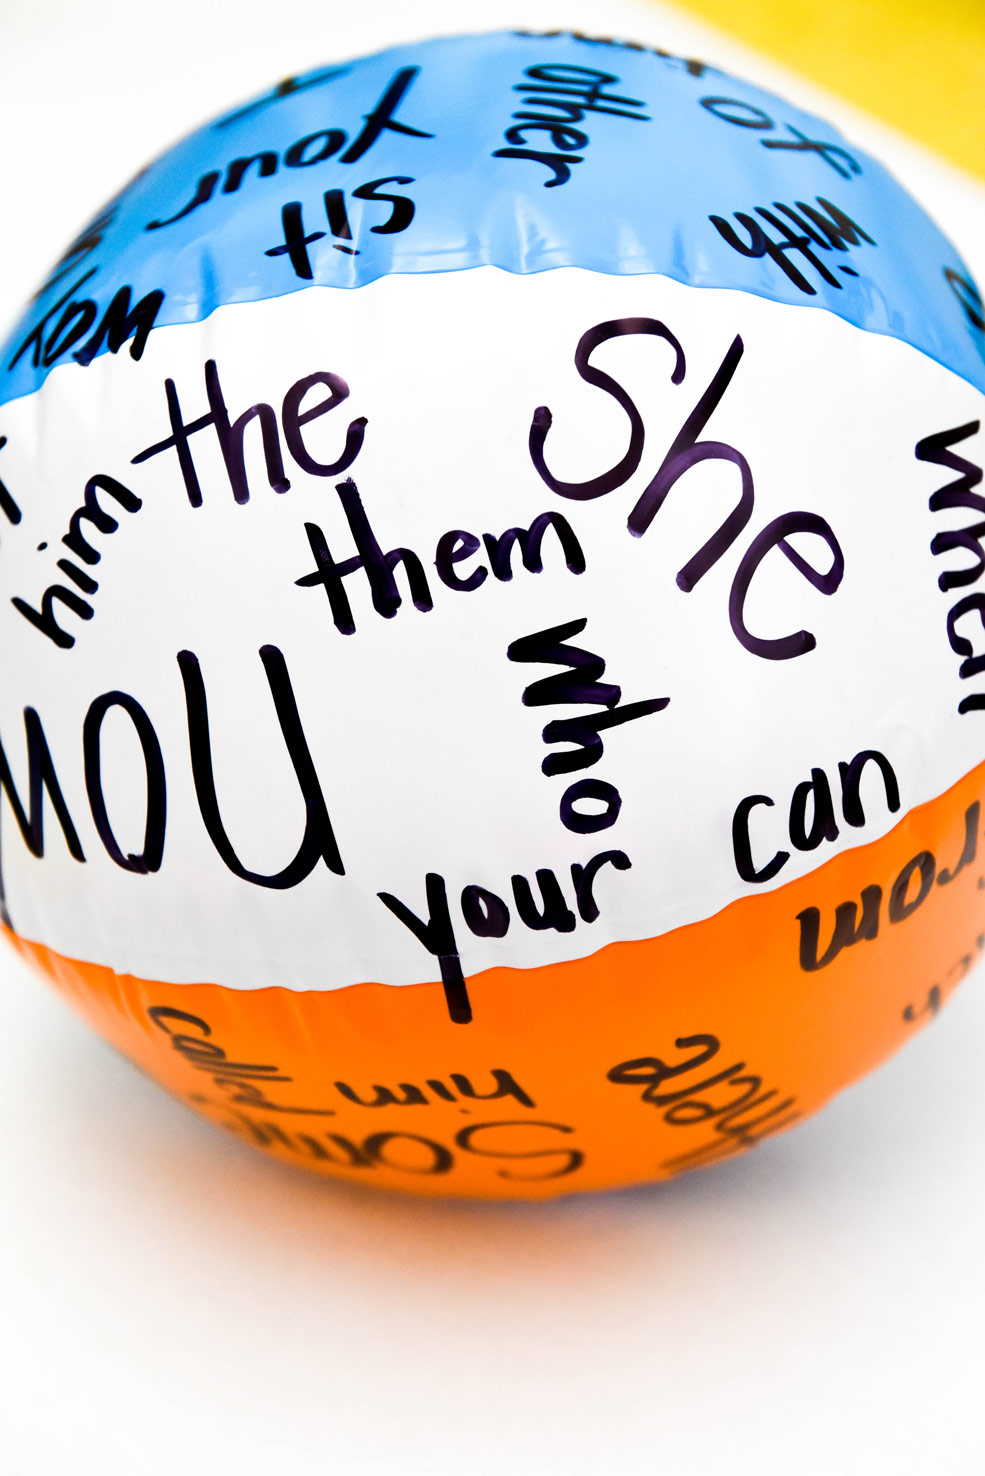 Sight word ball